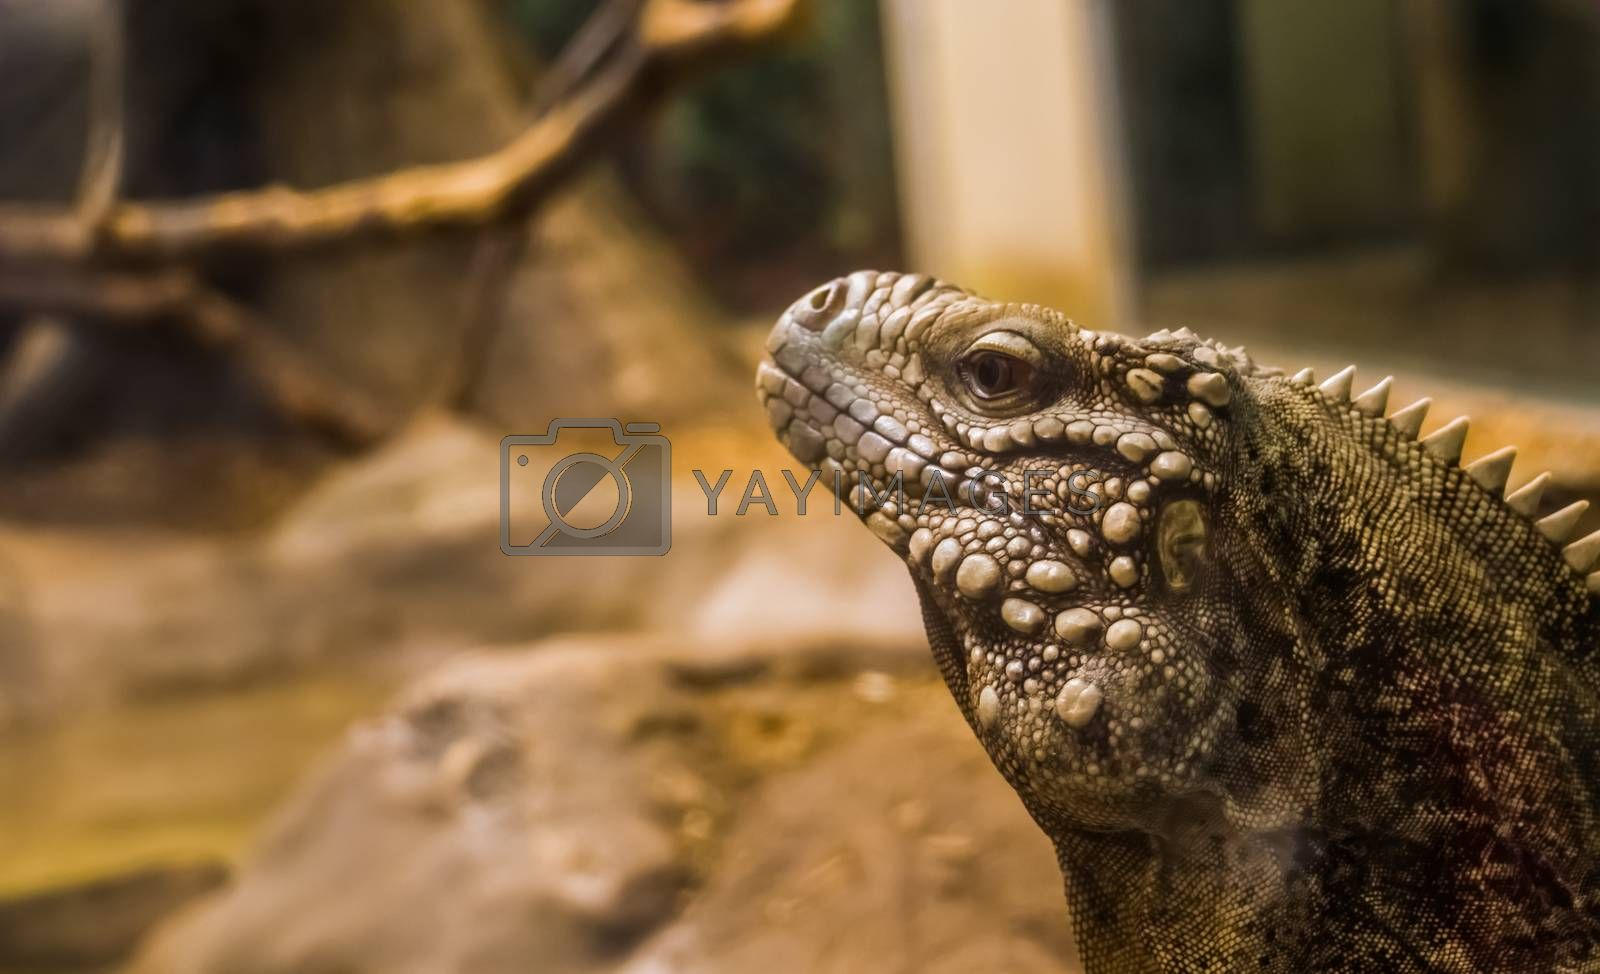 the face of a cuban rock iguana in closeup, tropical and vulnerable lizard specie from the coast of Cuba